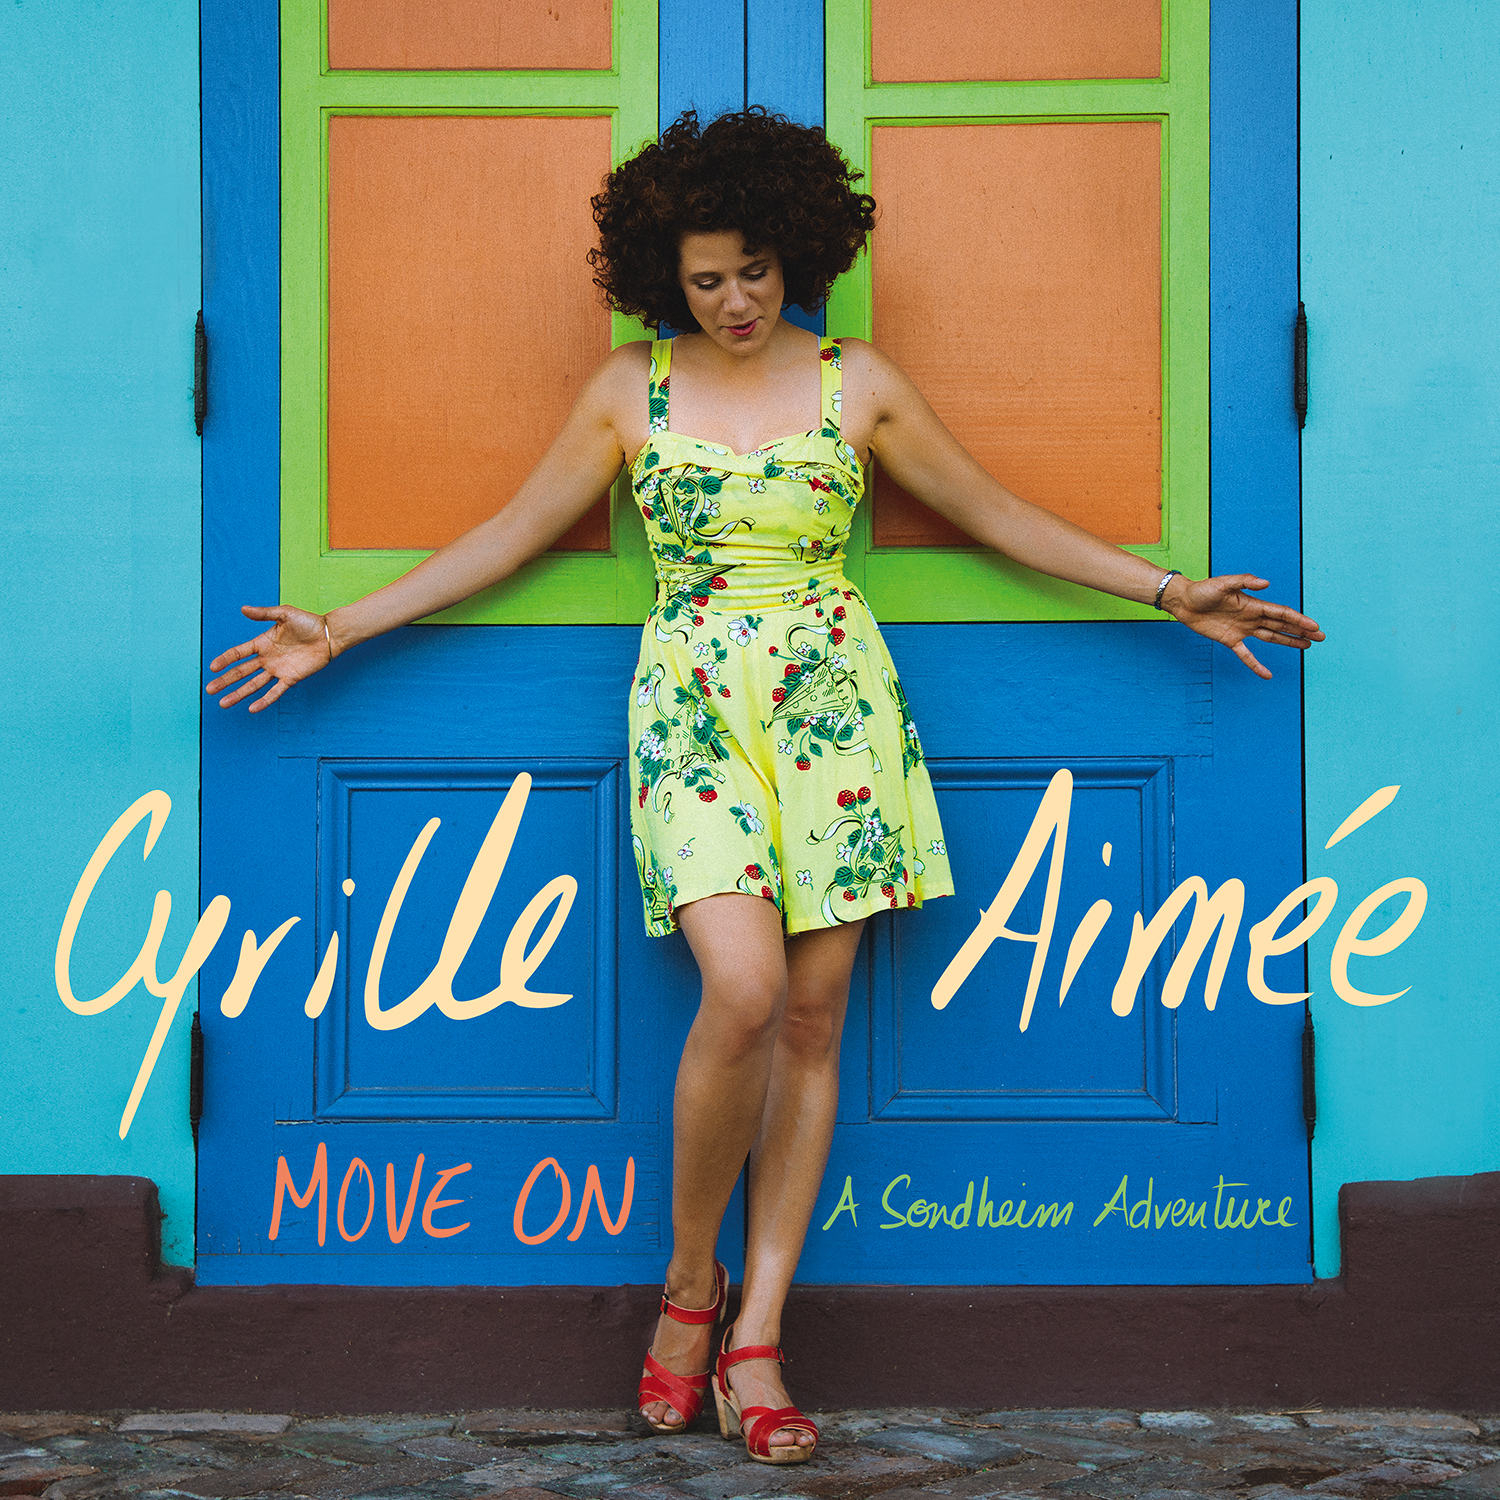 MAC 1144 Cyrille Aimee_Move On cover 1500x1500 rgb 72dpi 2